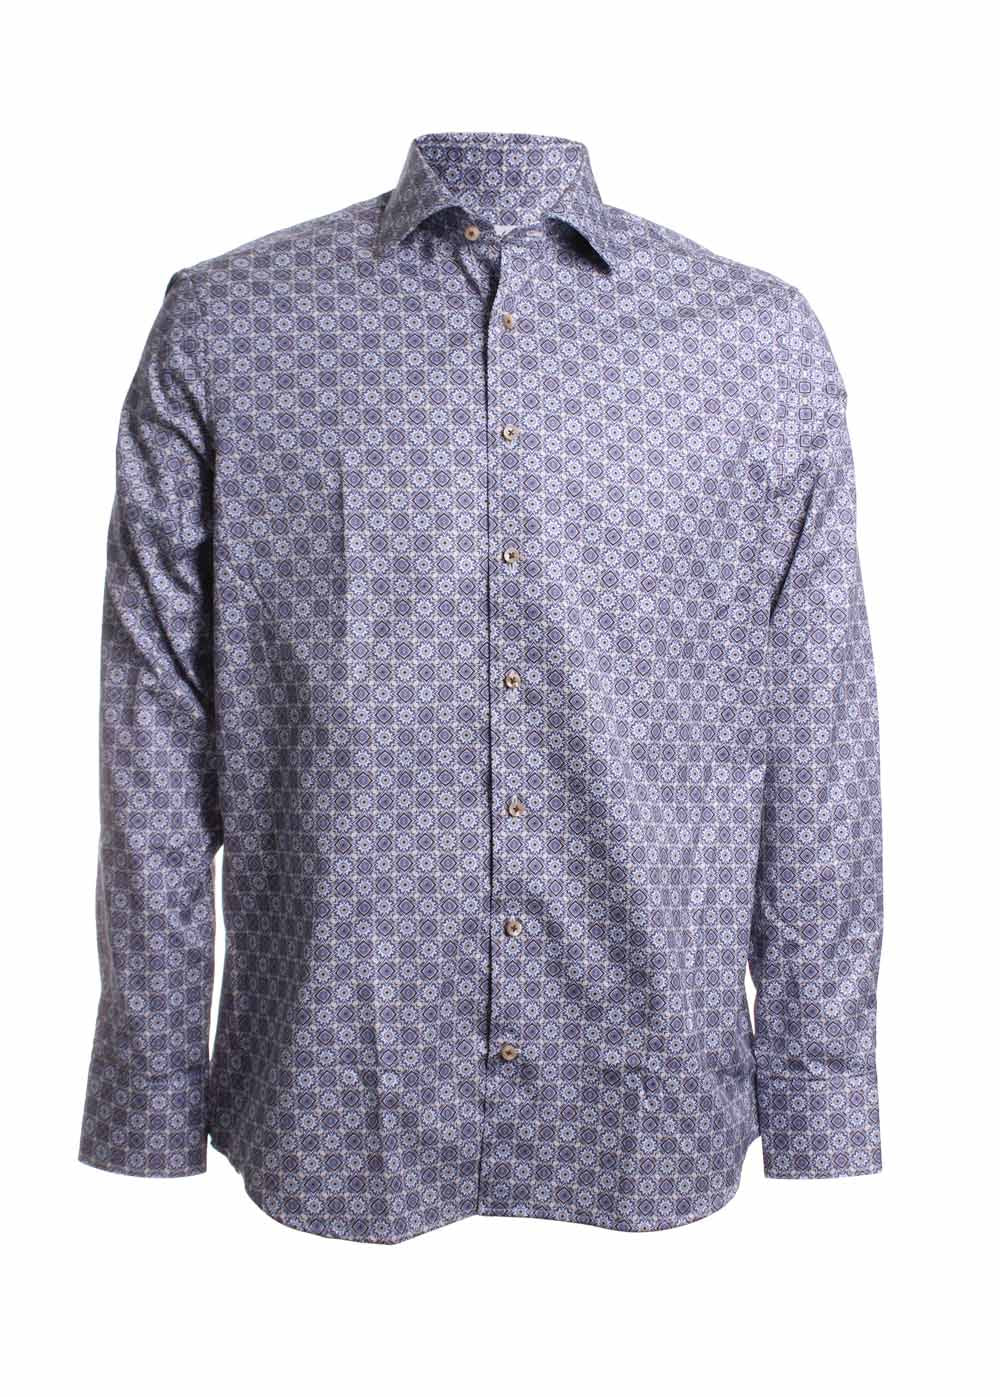 Stenstroms Kaleidoscope Printed Dress Shirt in Blue